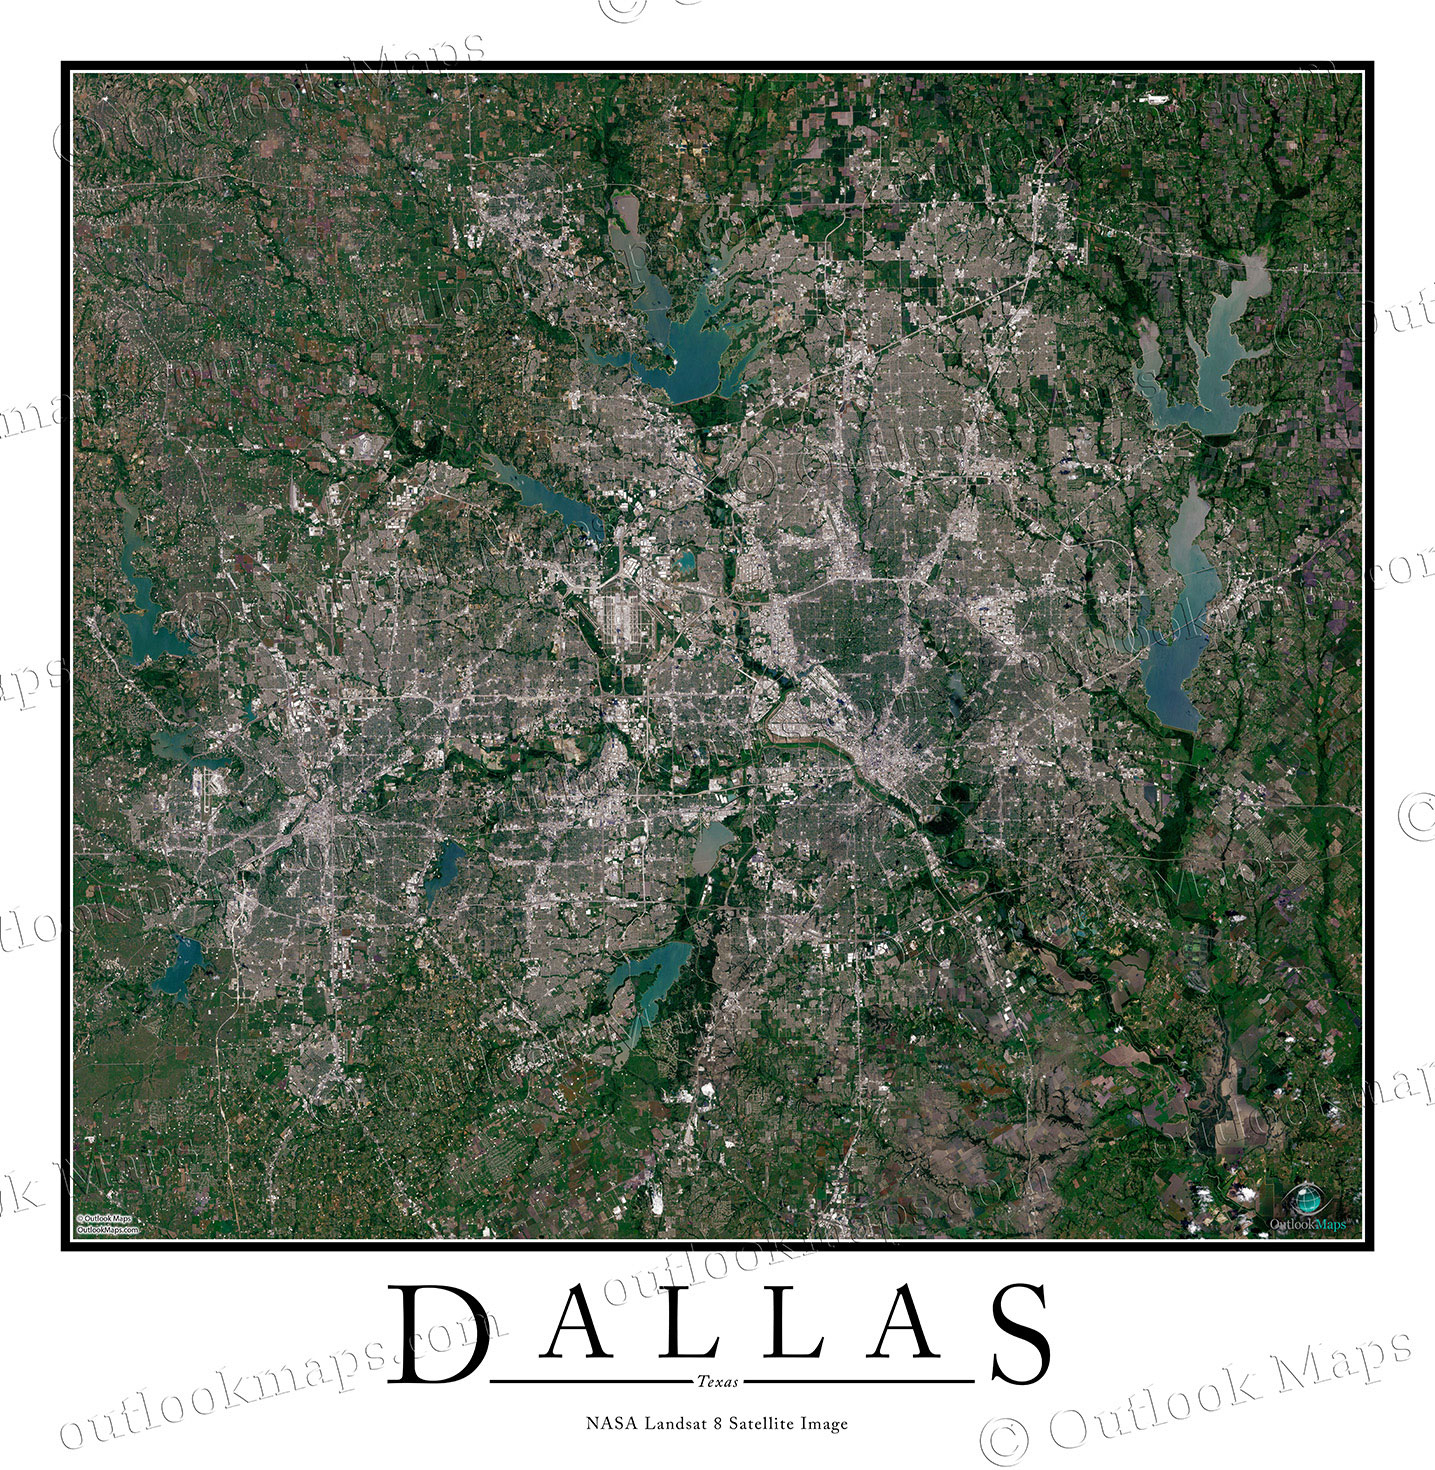 Dallas, Tx Satellite Map Print | Aerial Image Poster - Satellite Map Of Texas